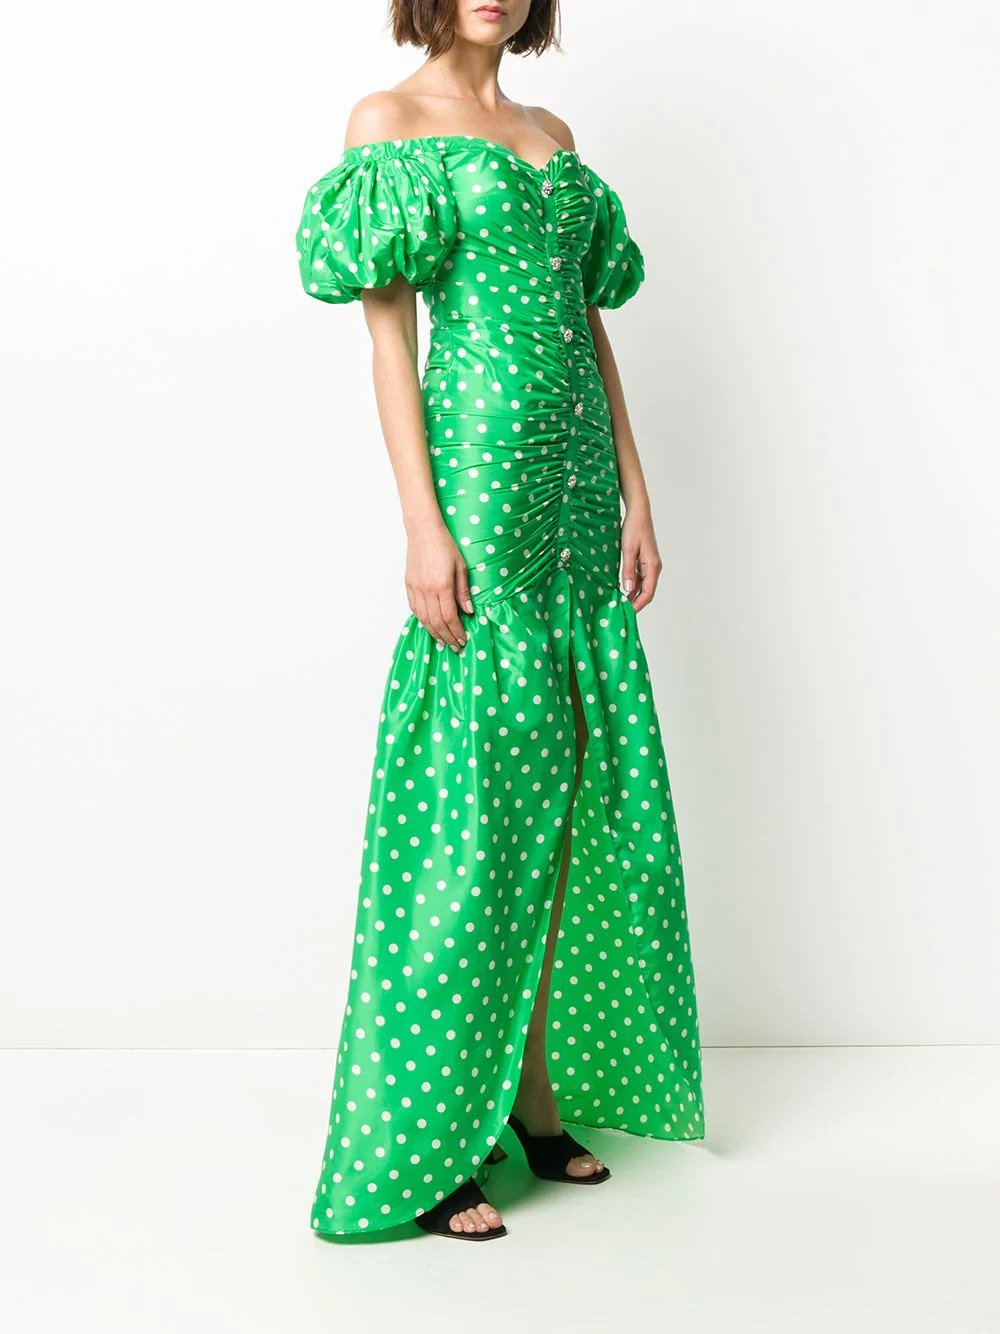 Long Off-The-Shoulder Polka Dot Taffetta Dress